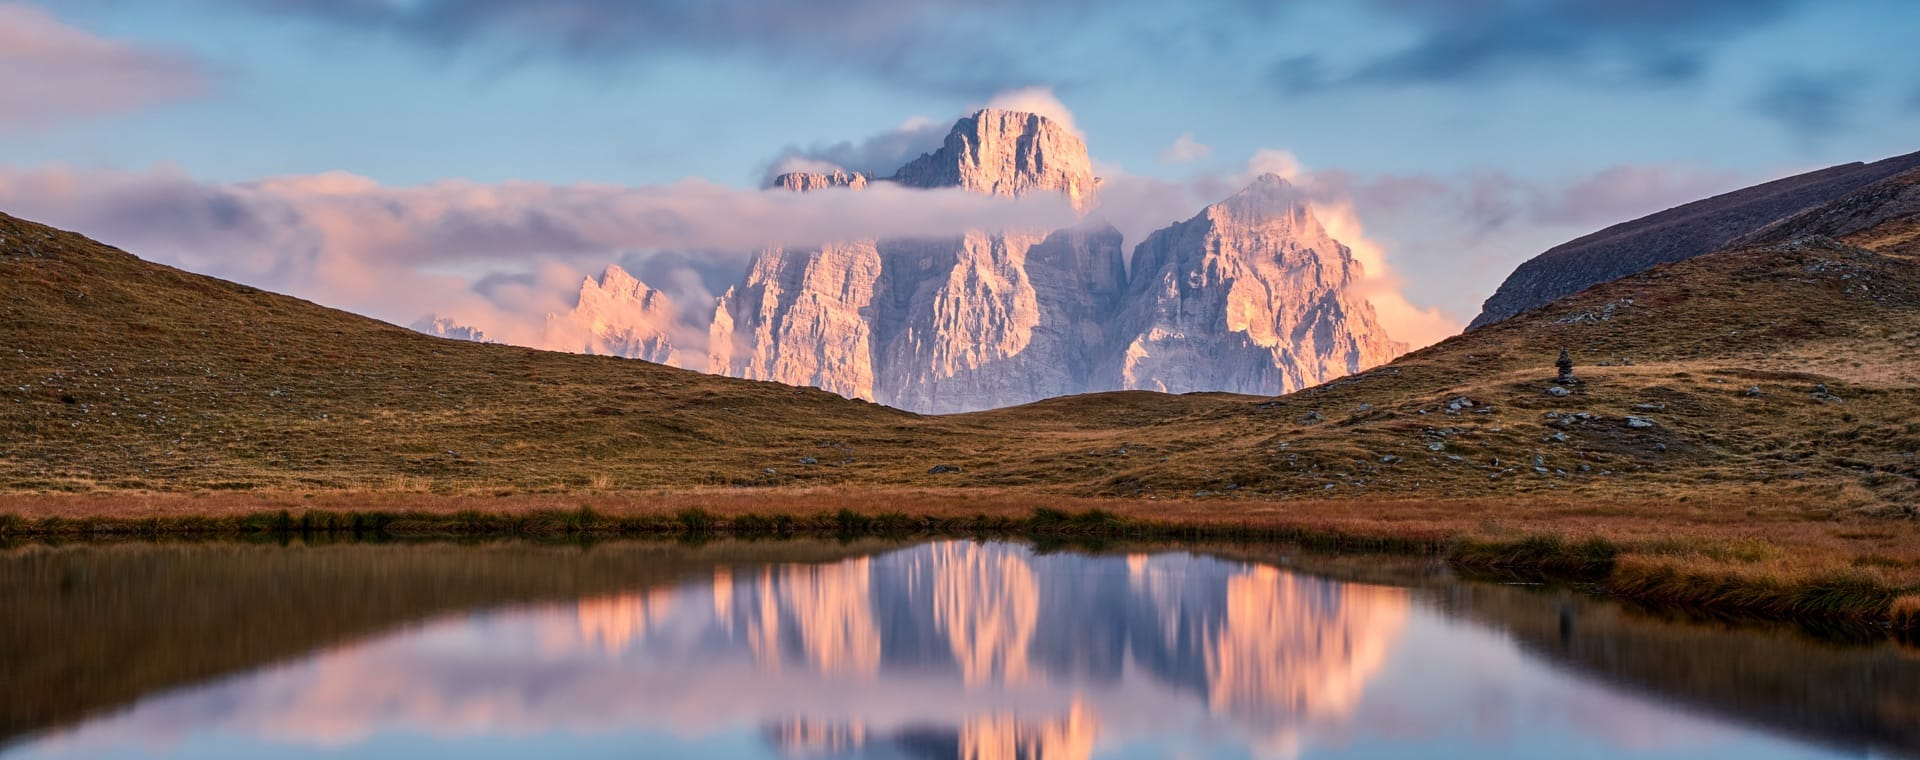 The Pelmo reflected in the lake Baste - Dolomites